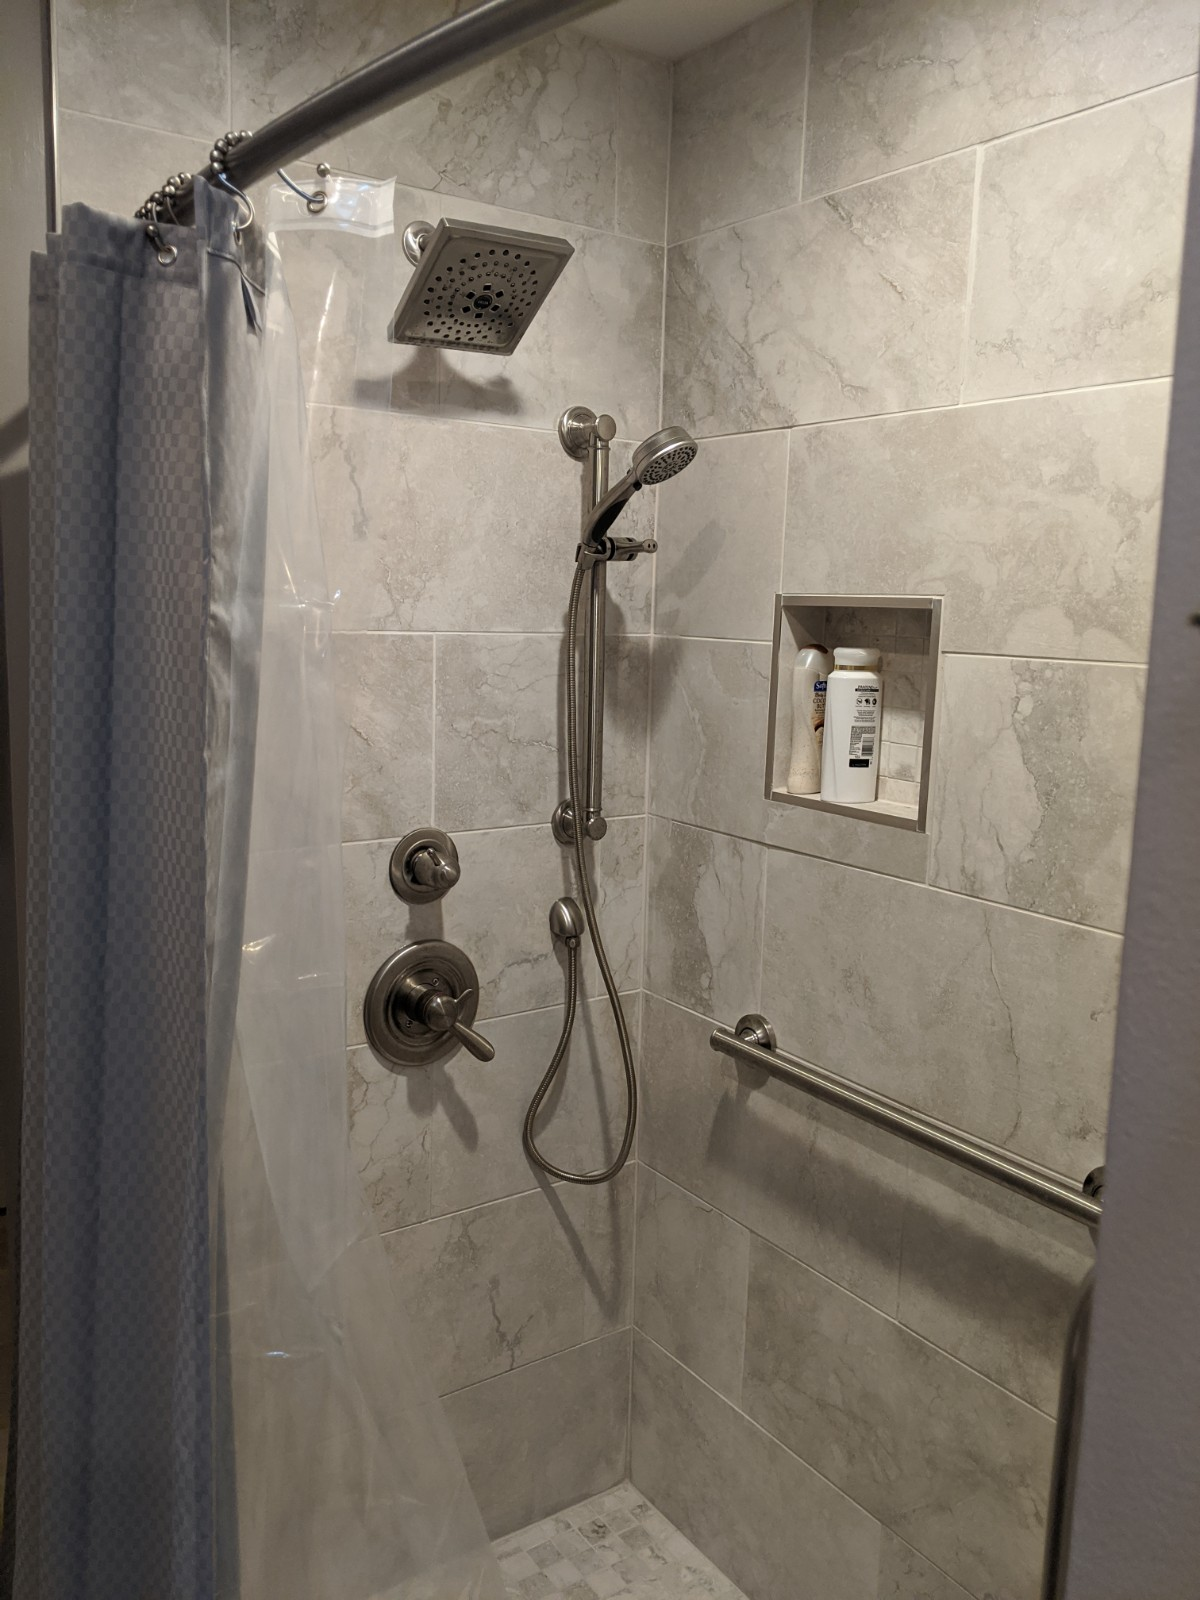 After shower picture, shower has marble style tile in a large format, new grab bars, handheld and shower head